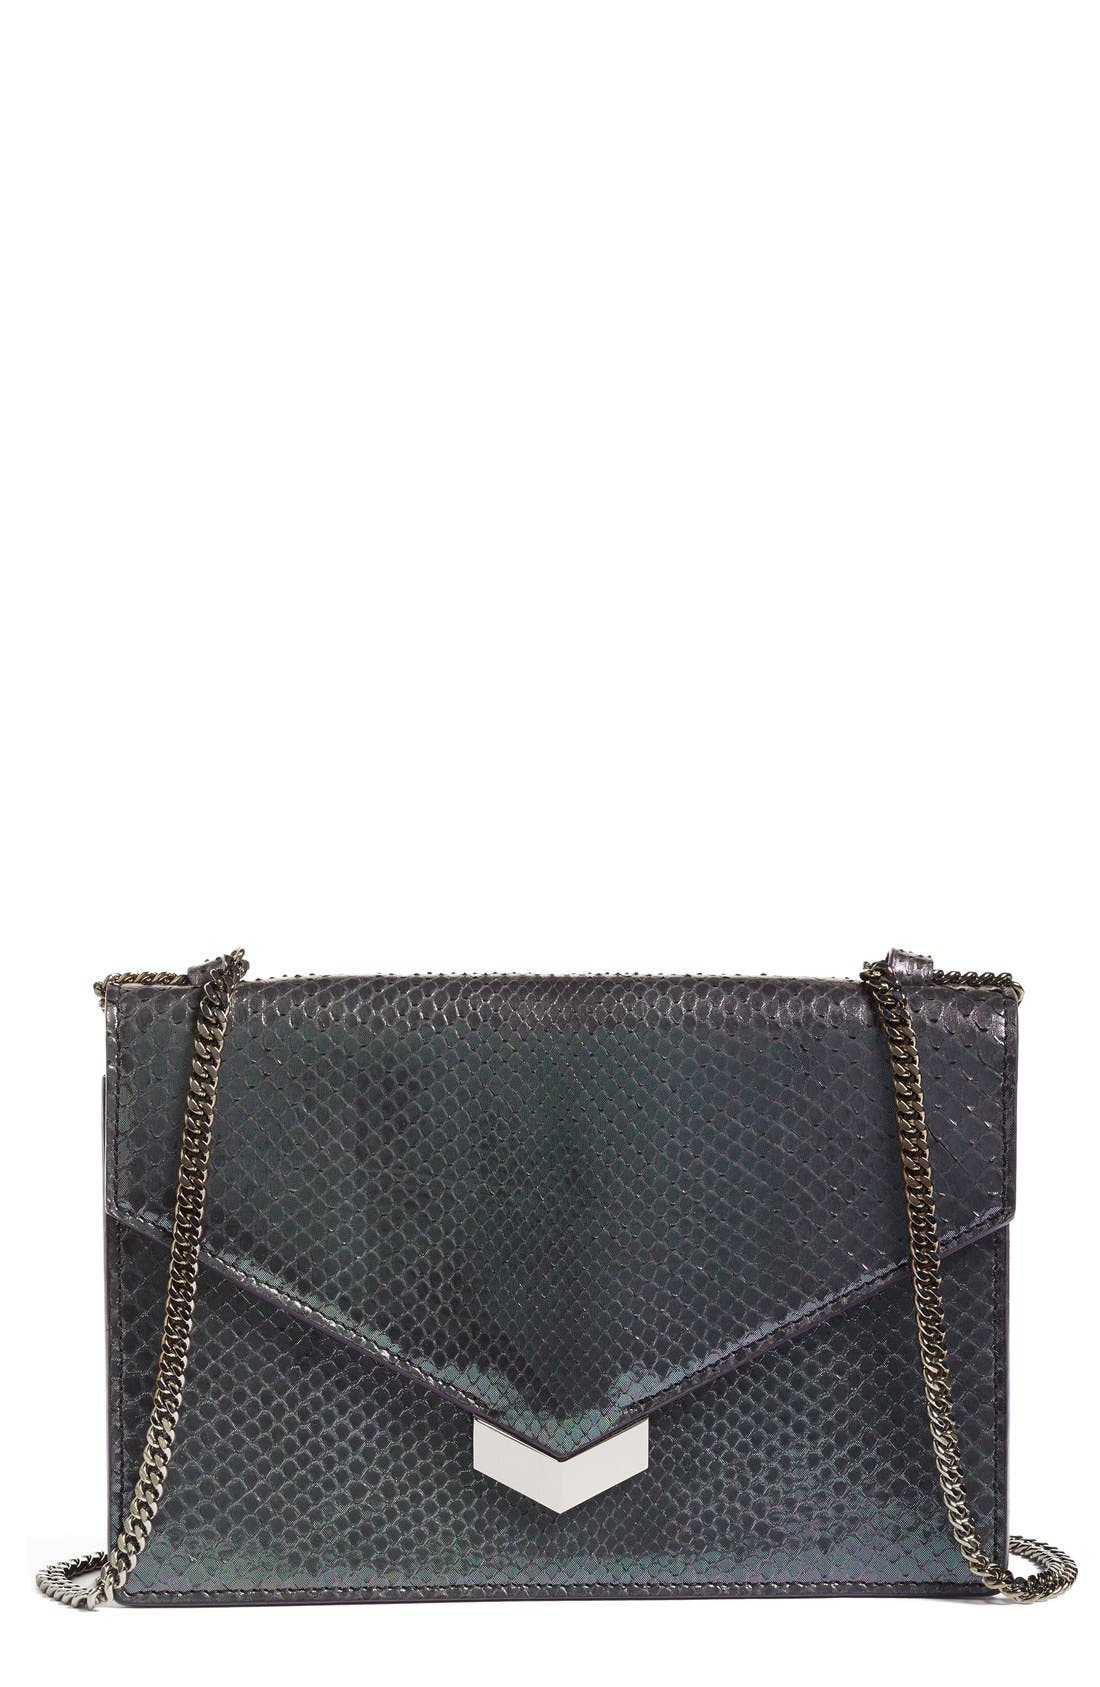 JIMMY CHOO Leila Genuine Python Crossbody Bag